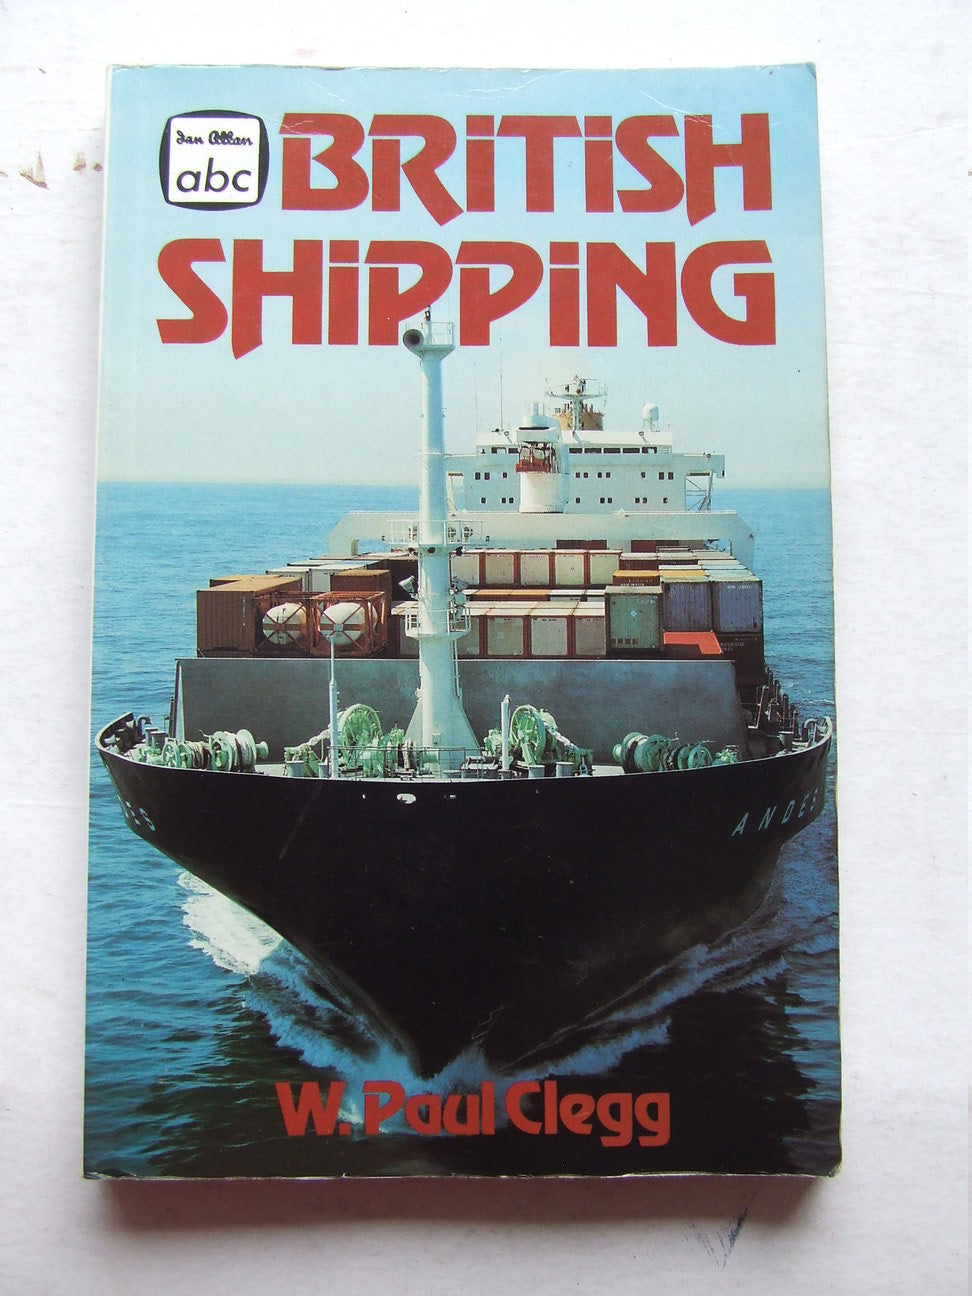 British Shipping [Ian Allan ABC Book]